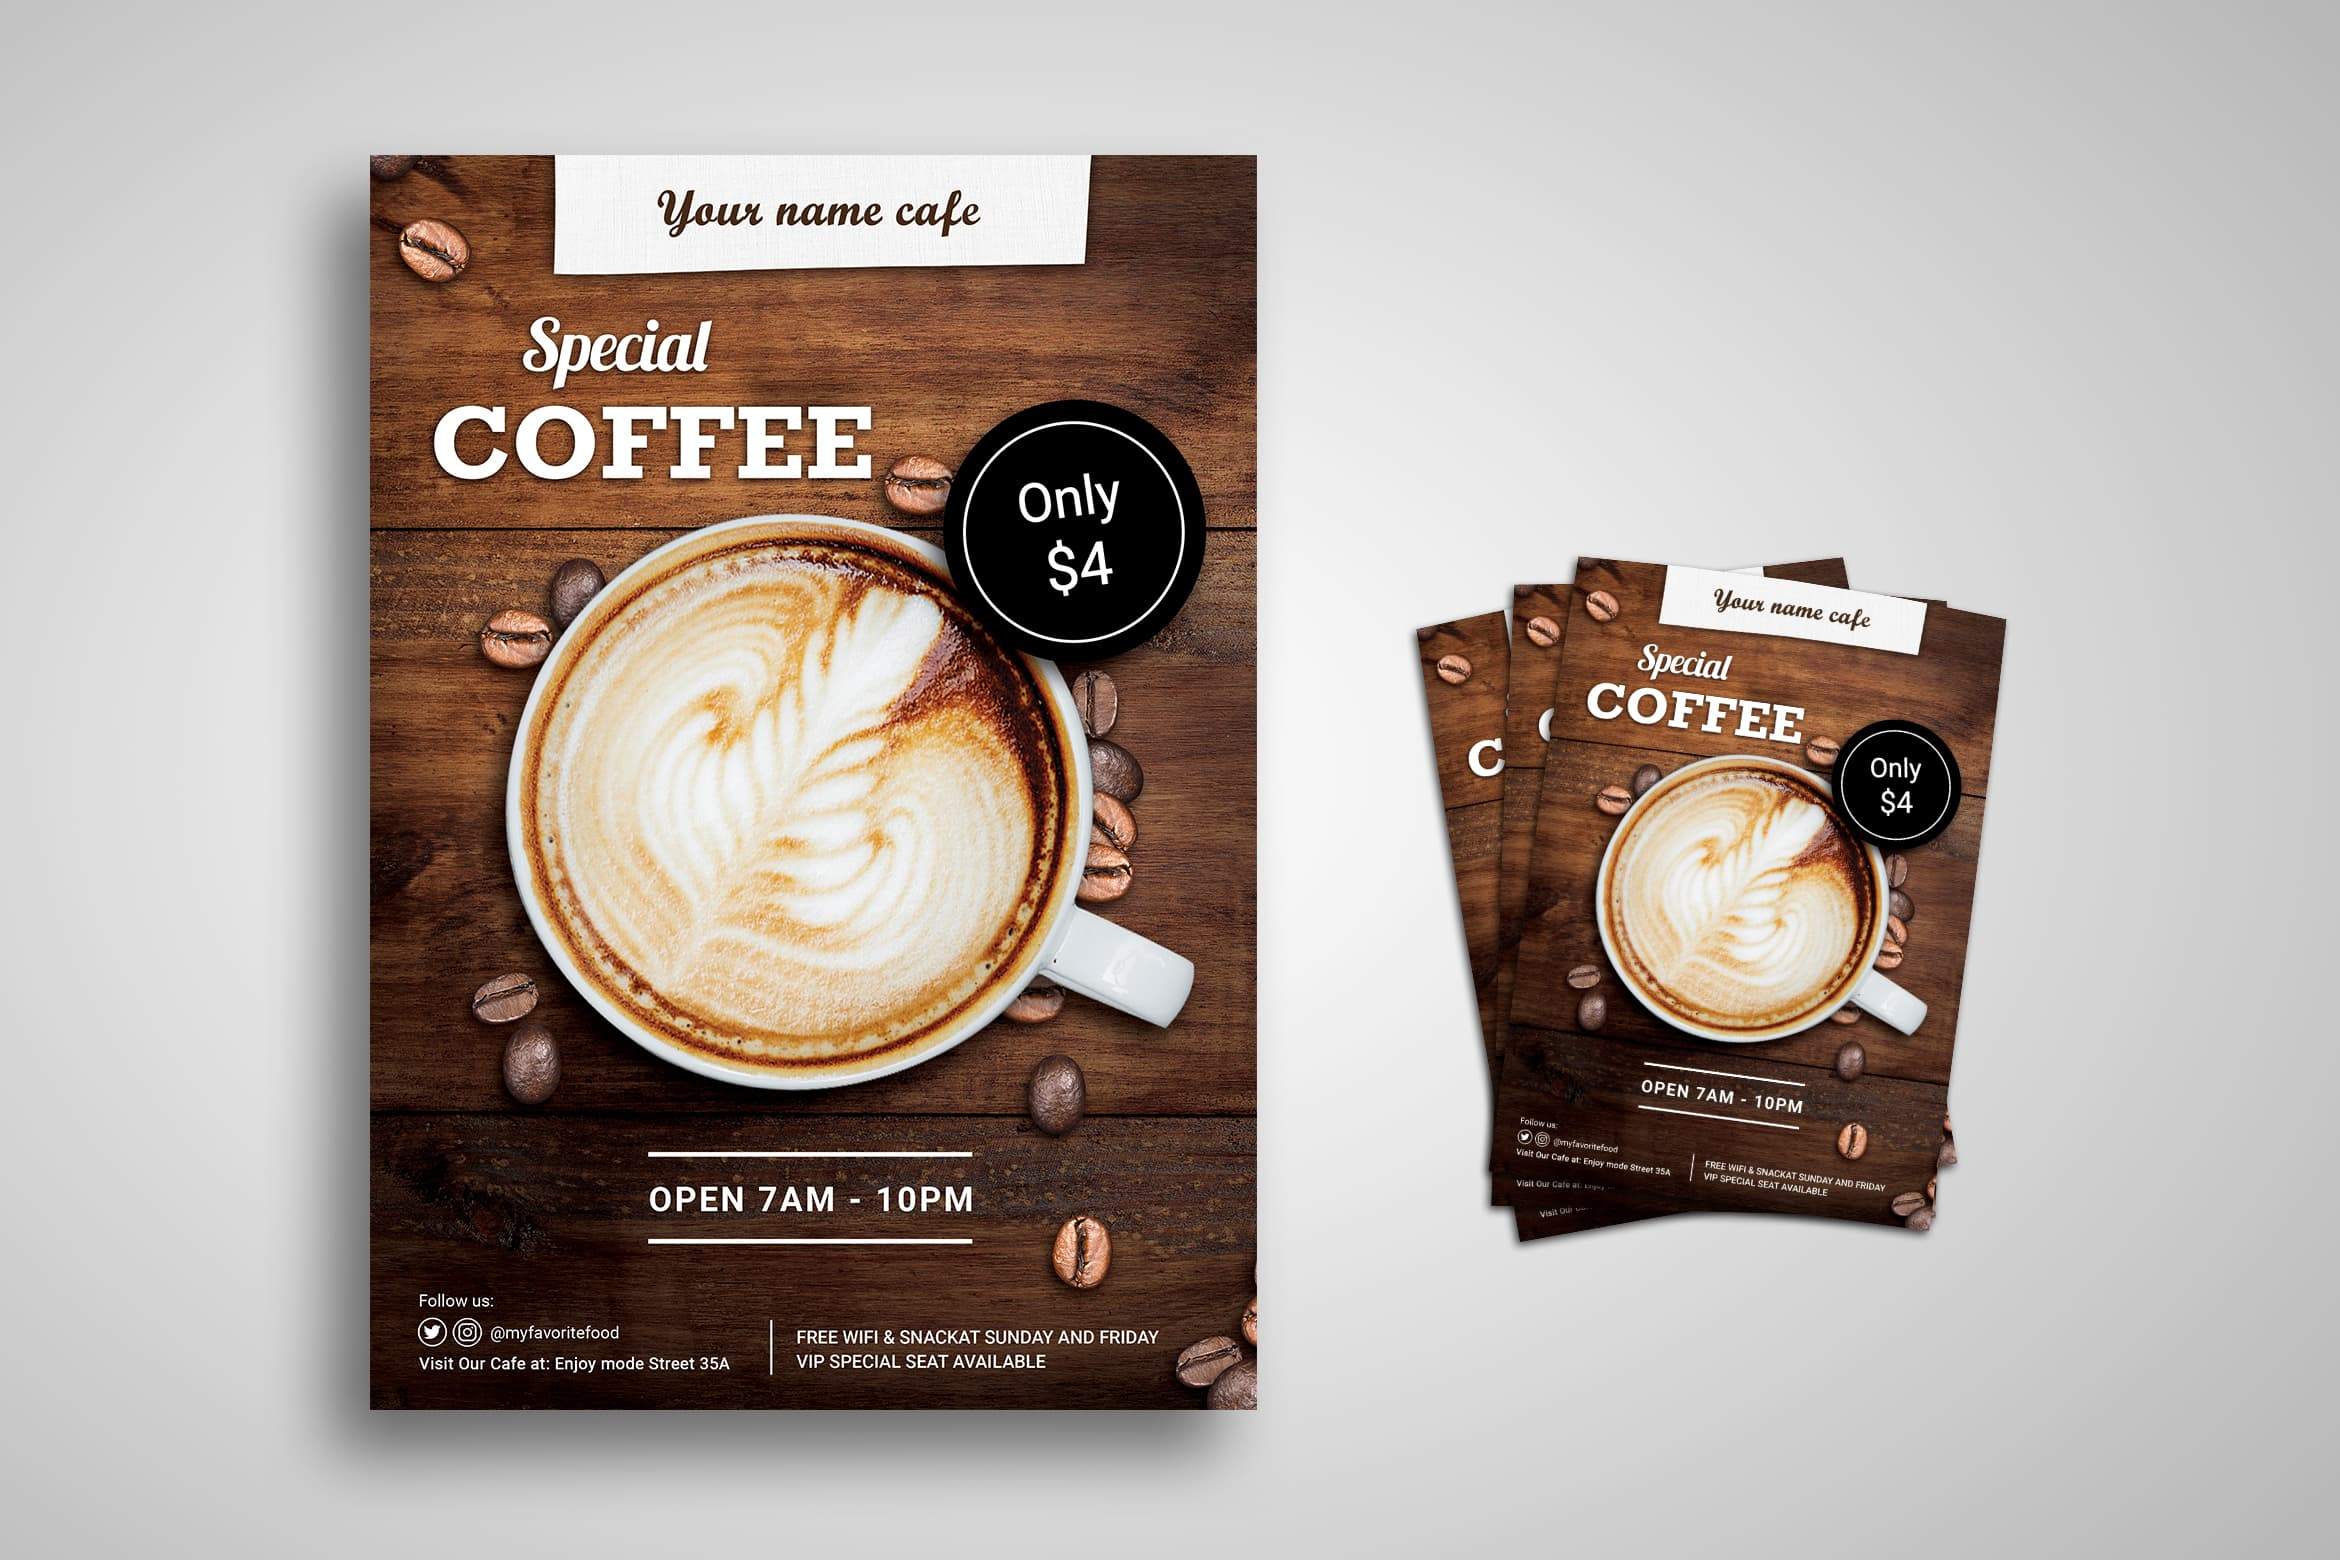 Flyer Template - Special Coffee